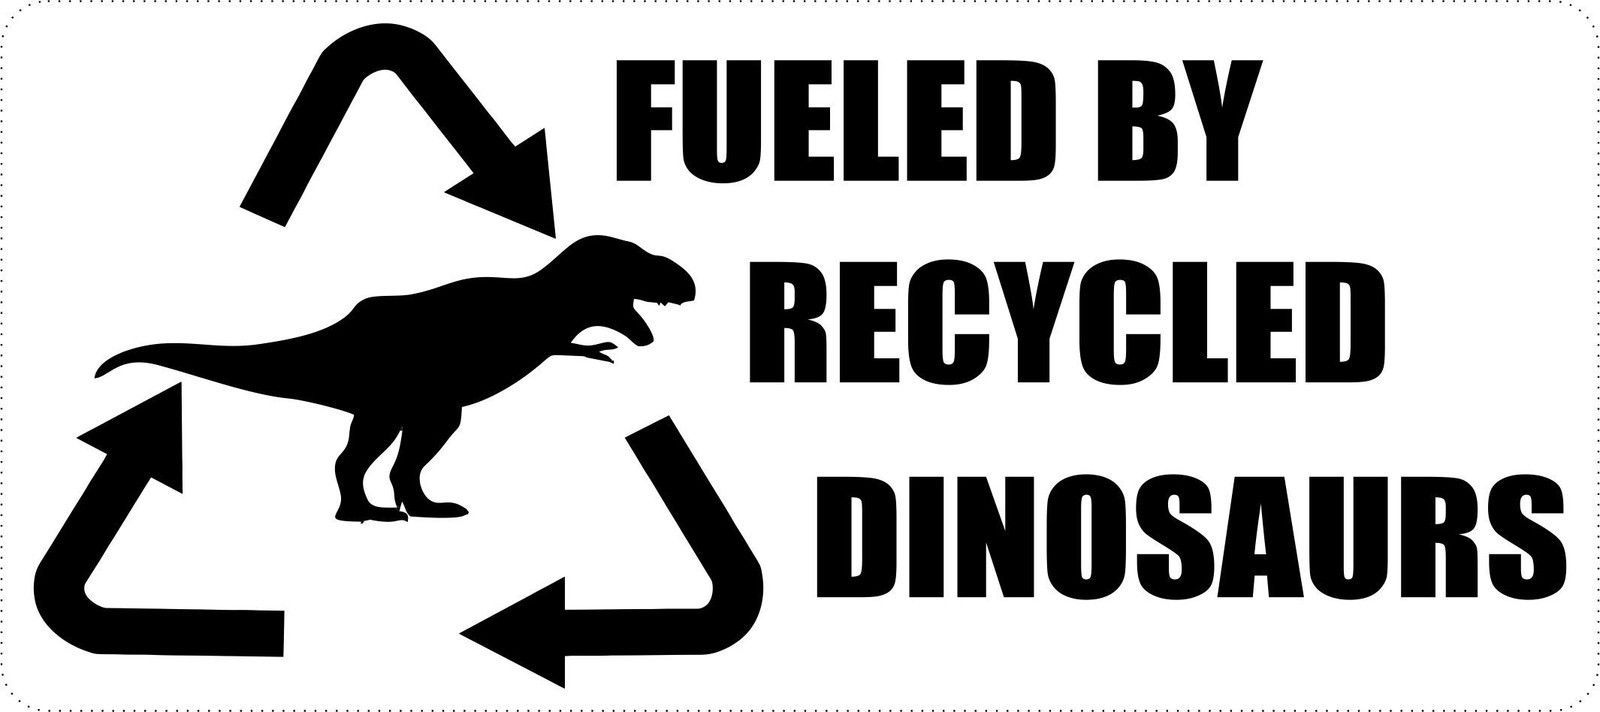 fueled by recycled dinosaurs sticker Funny vinyl car window decal bumper sticker